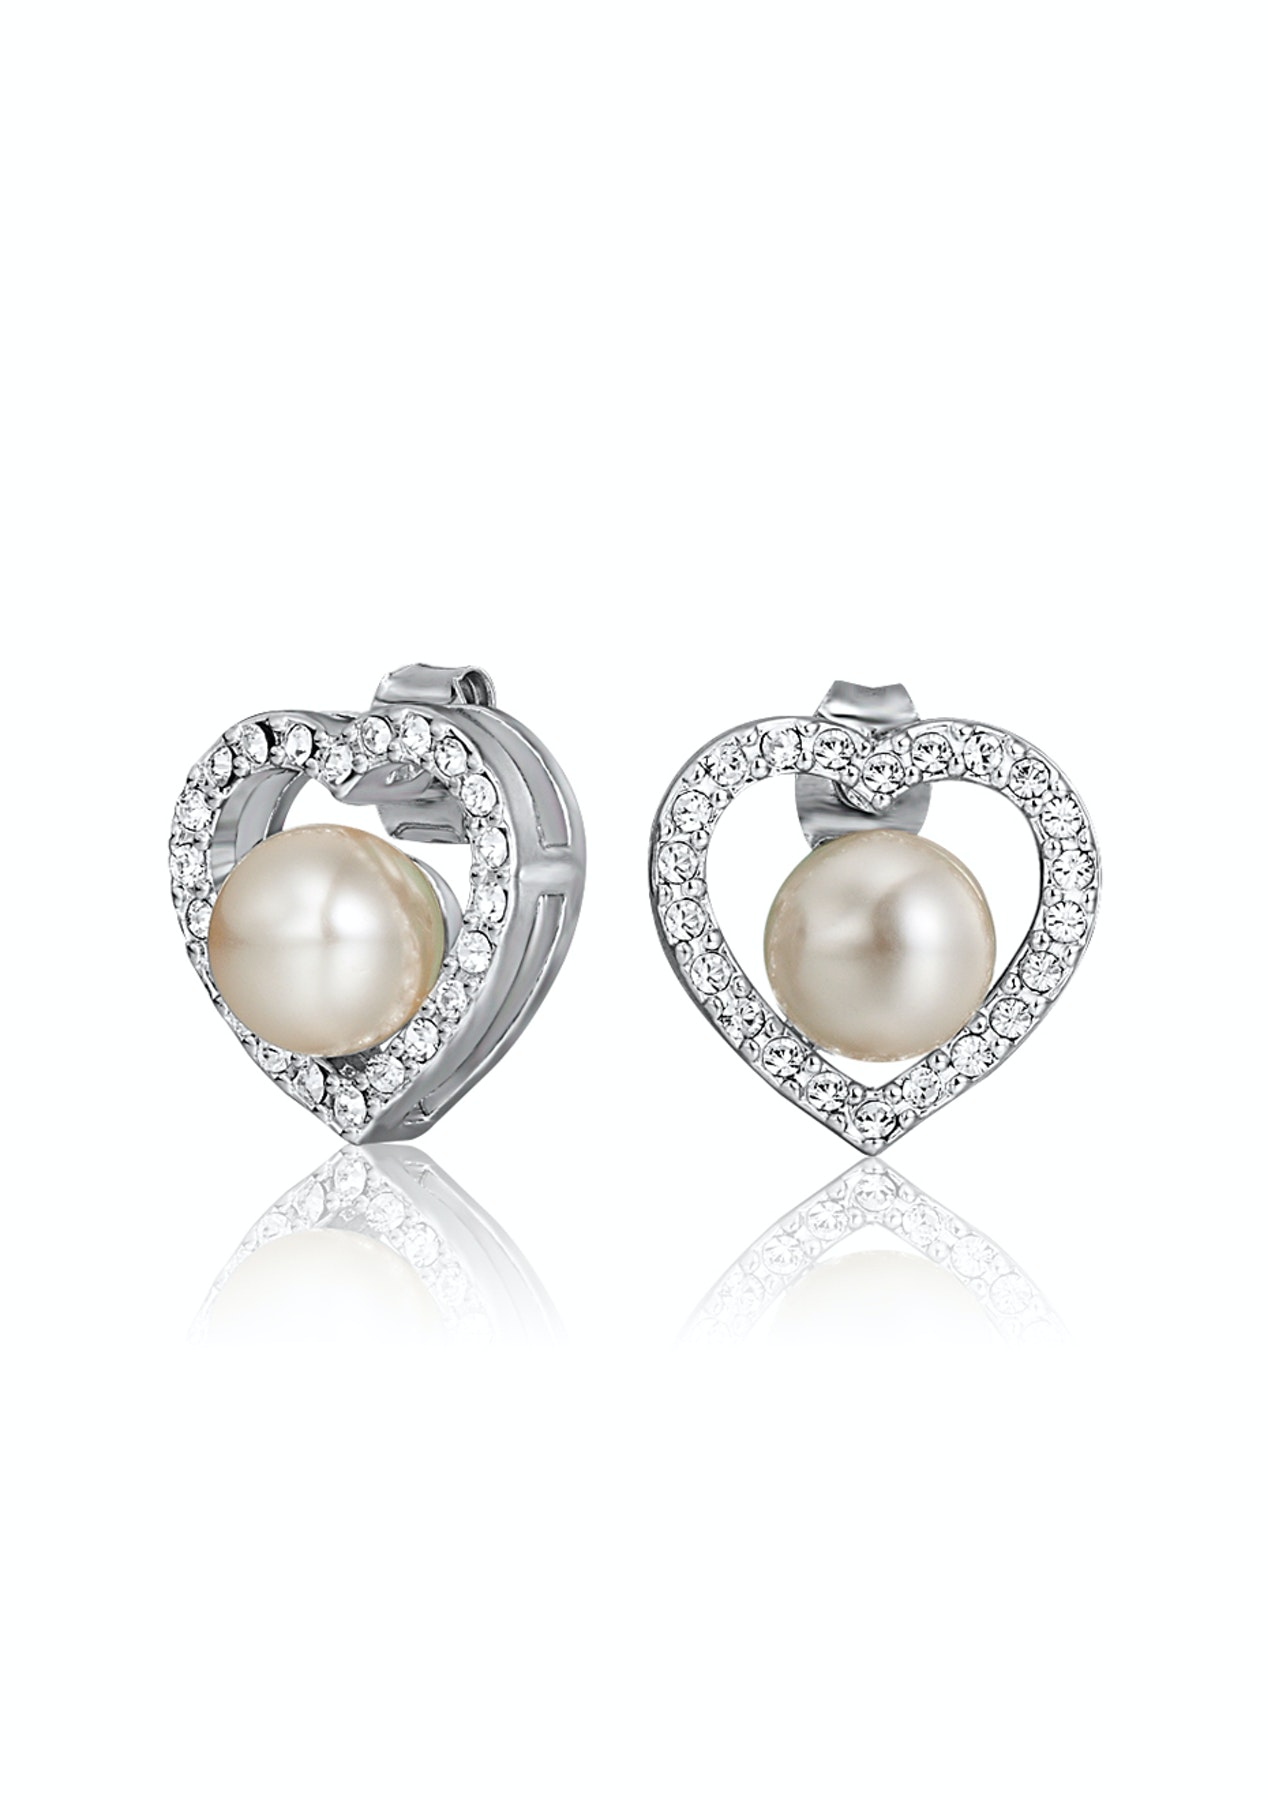 Pearl Heart Earrings Embellished with Crystals from Swarovski ...